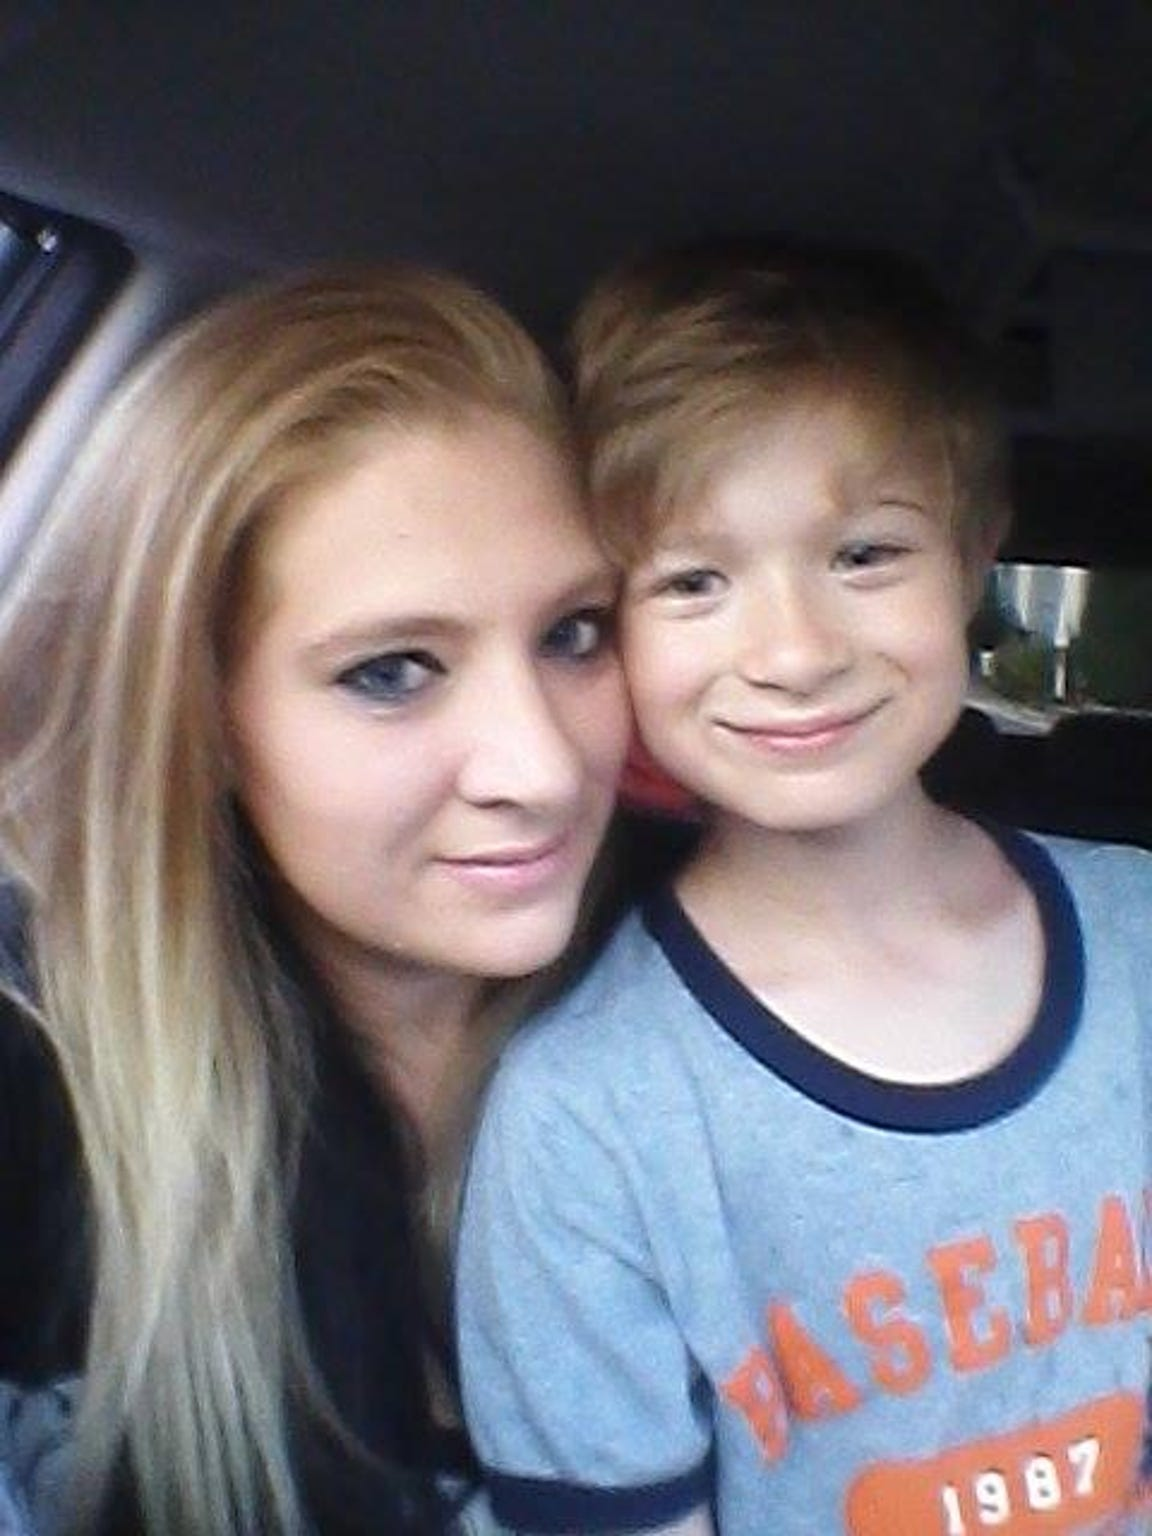 Stephanie and her son, Michael, 11.